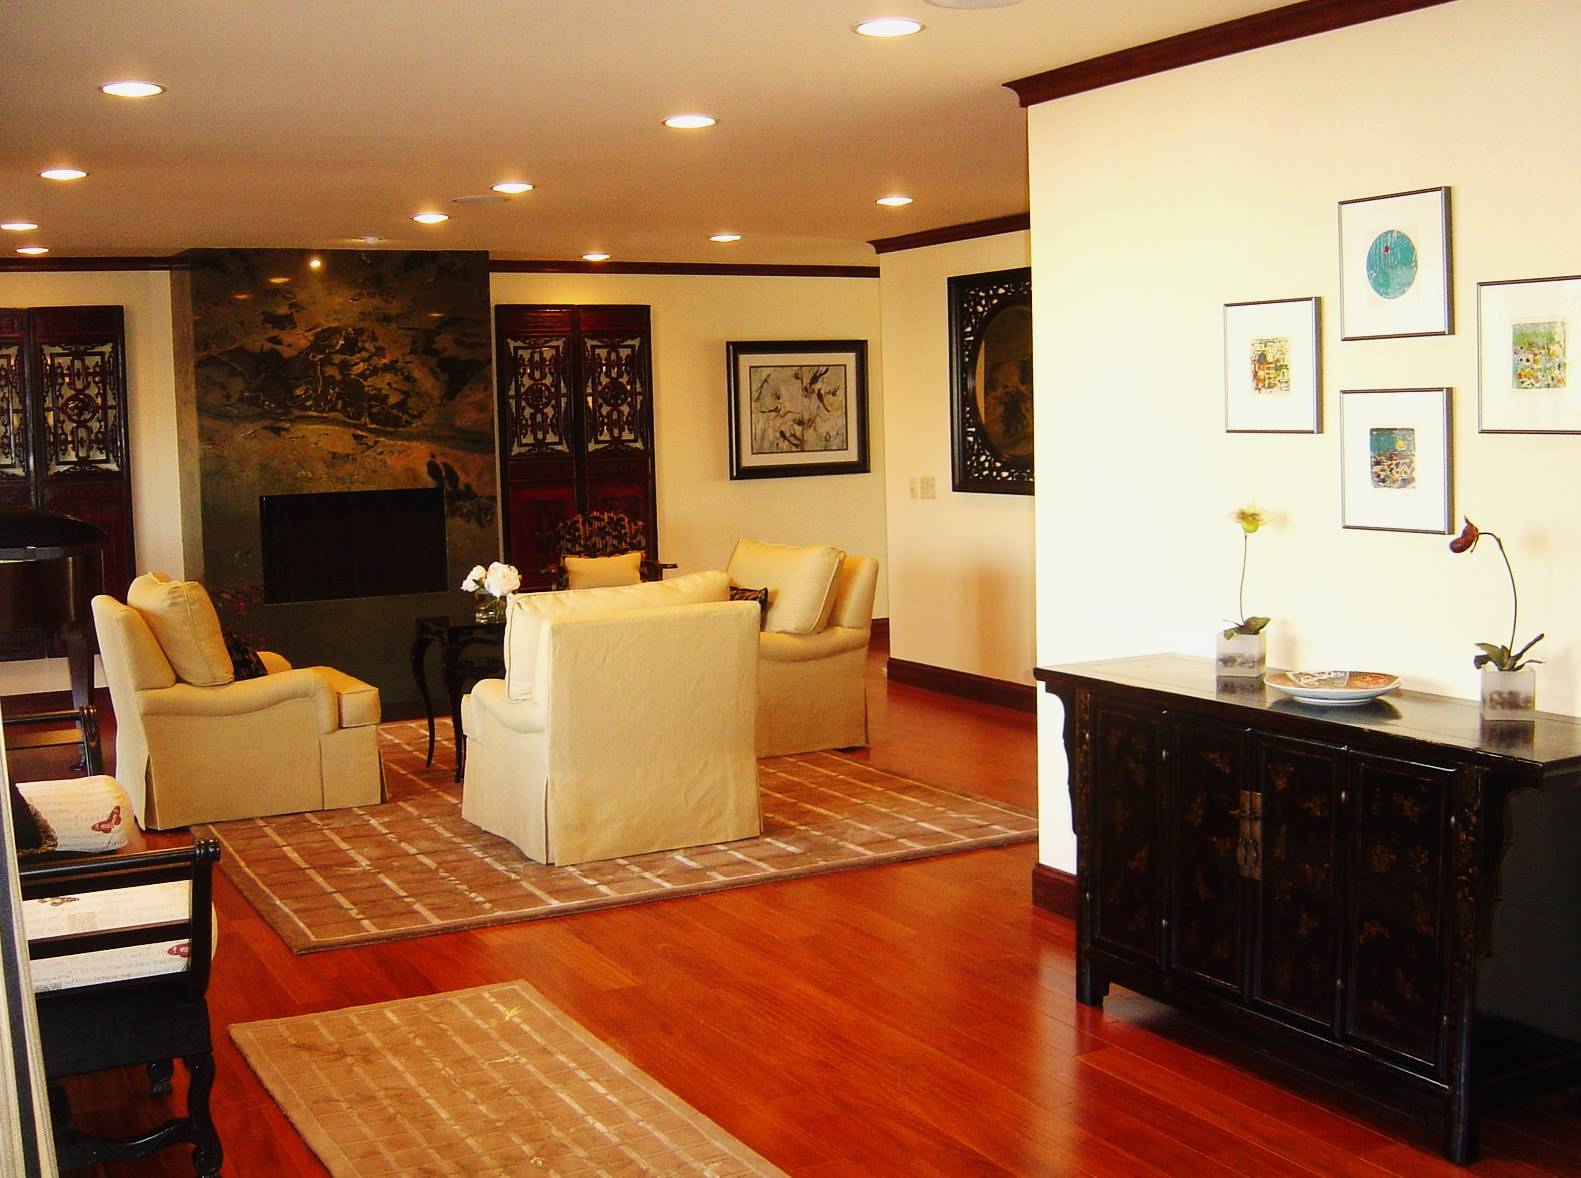 Modern living room with Asian Accents - another view